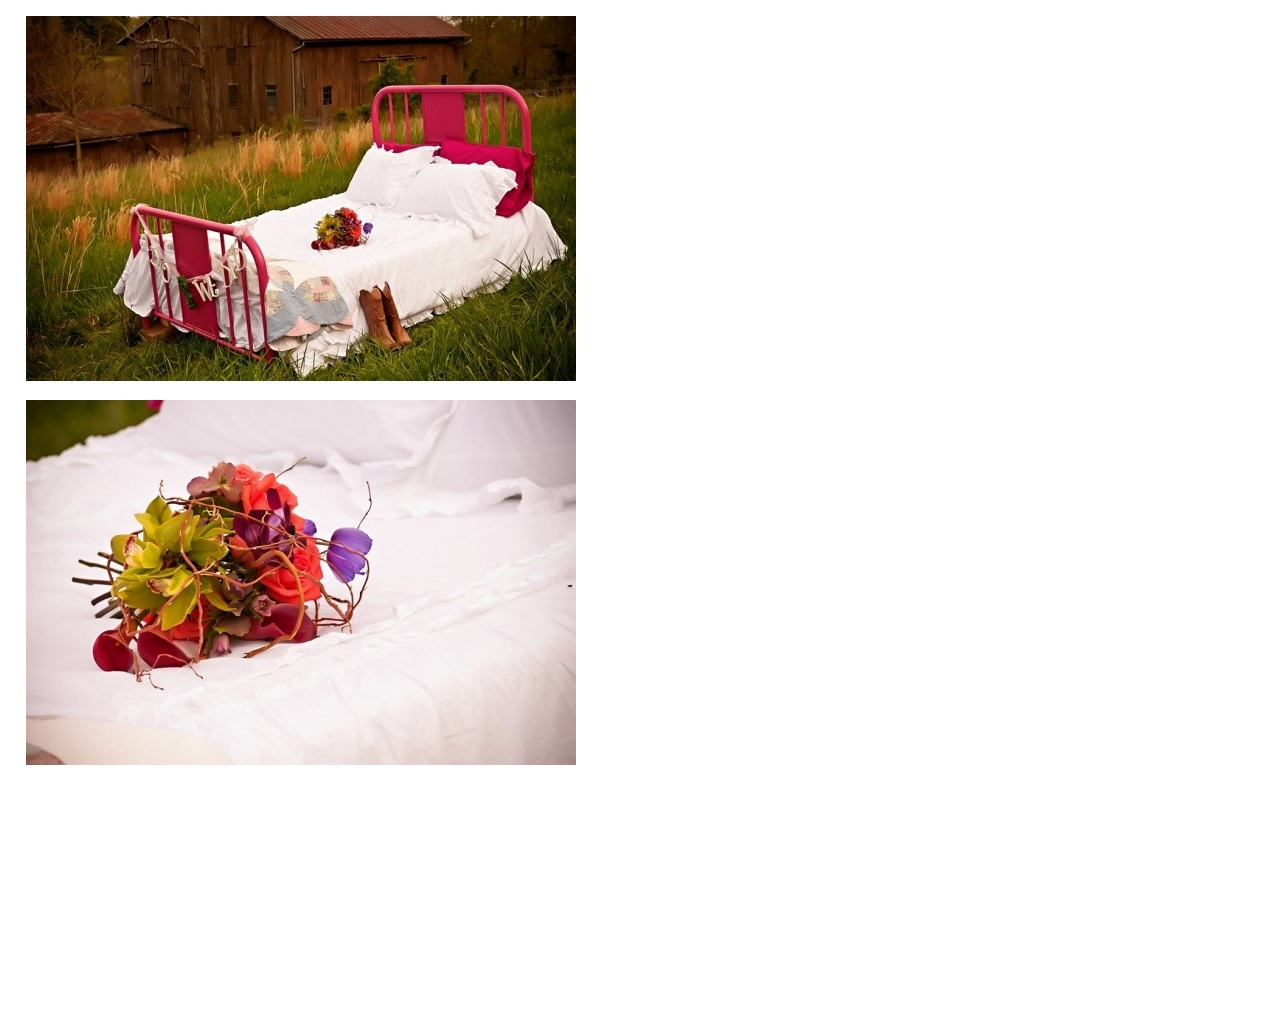 iron bed and flowers